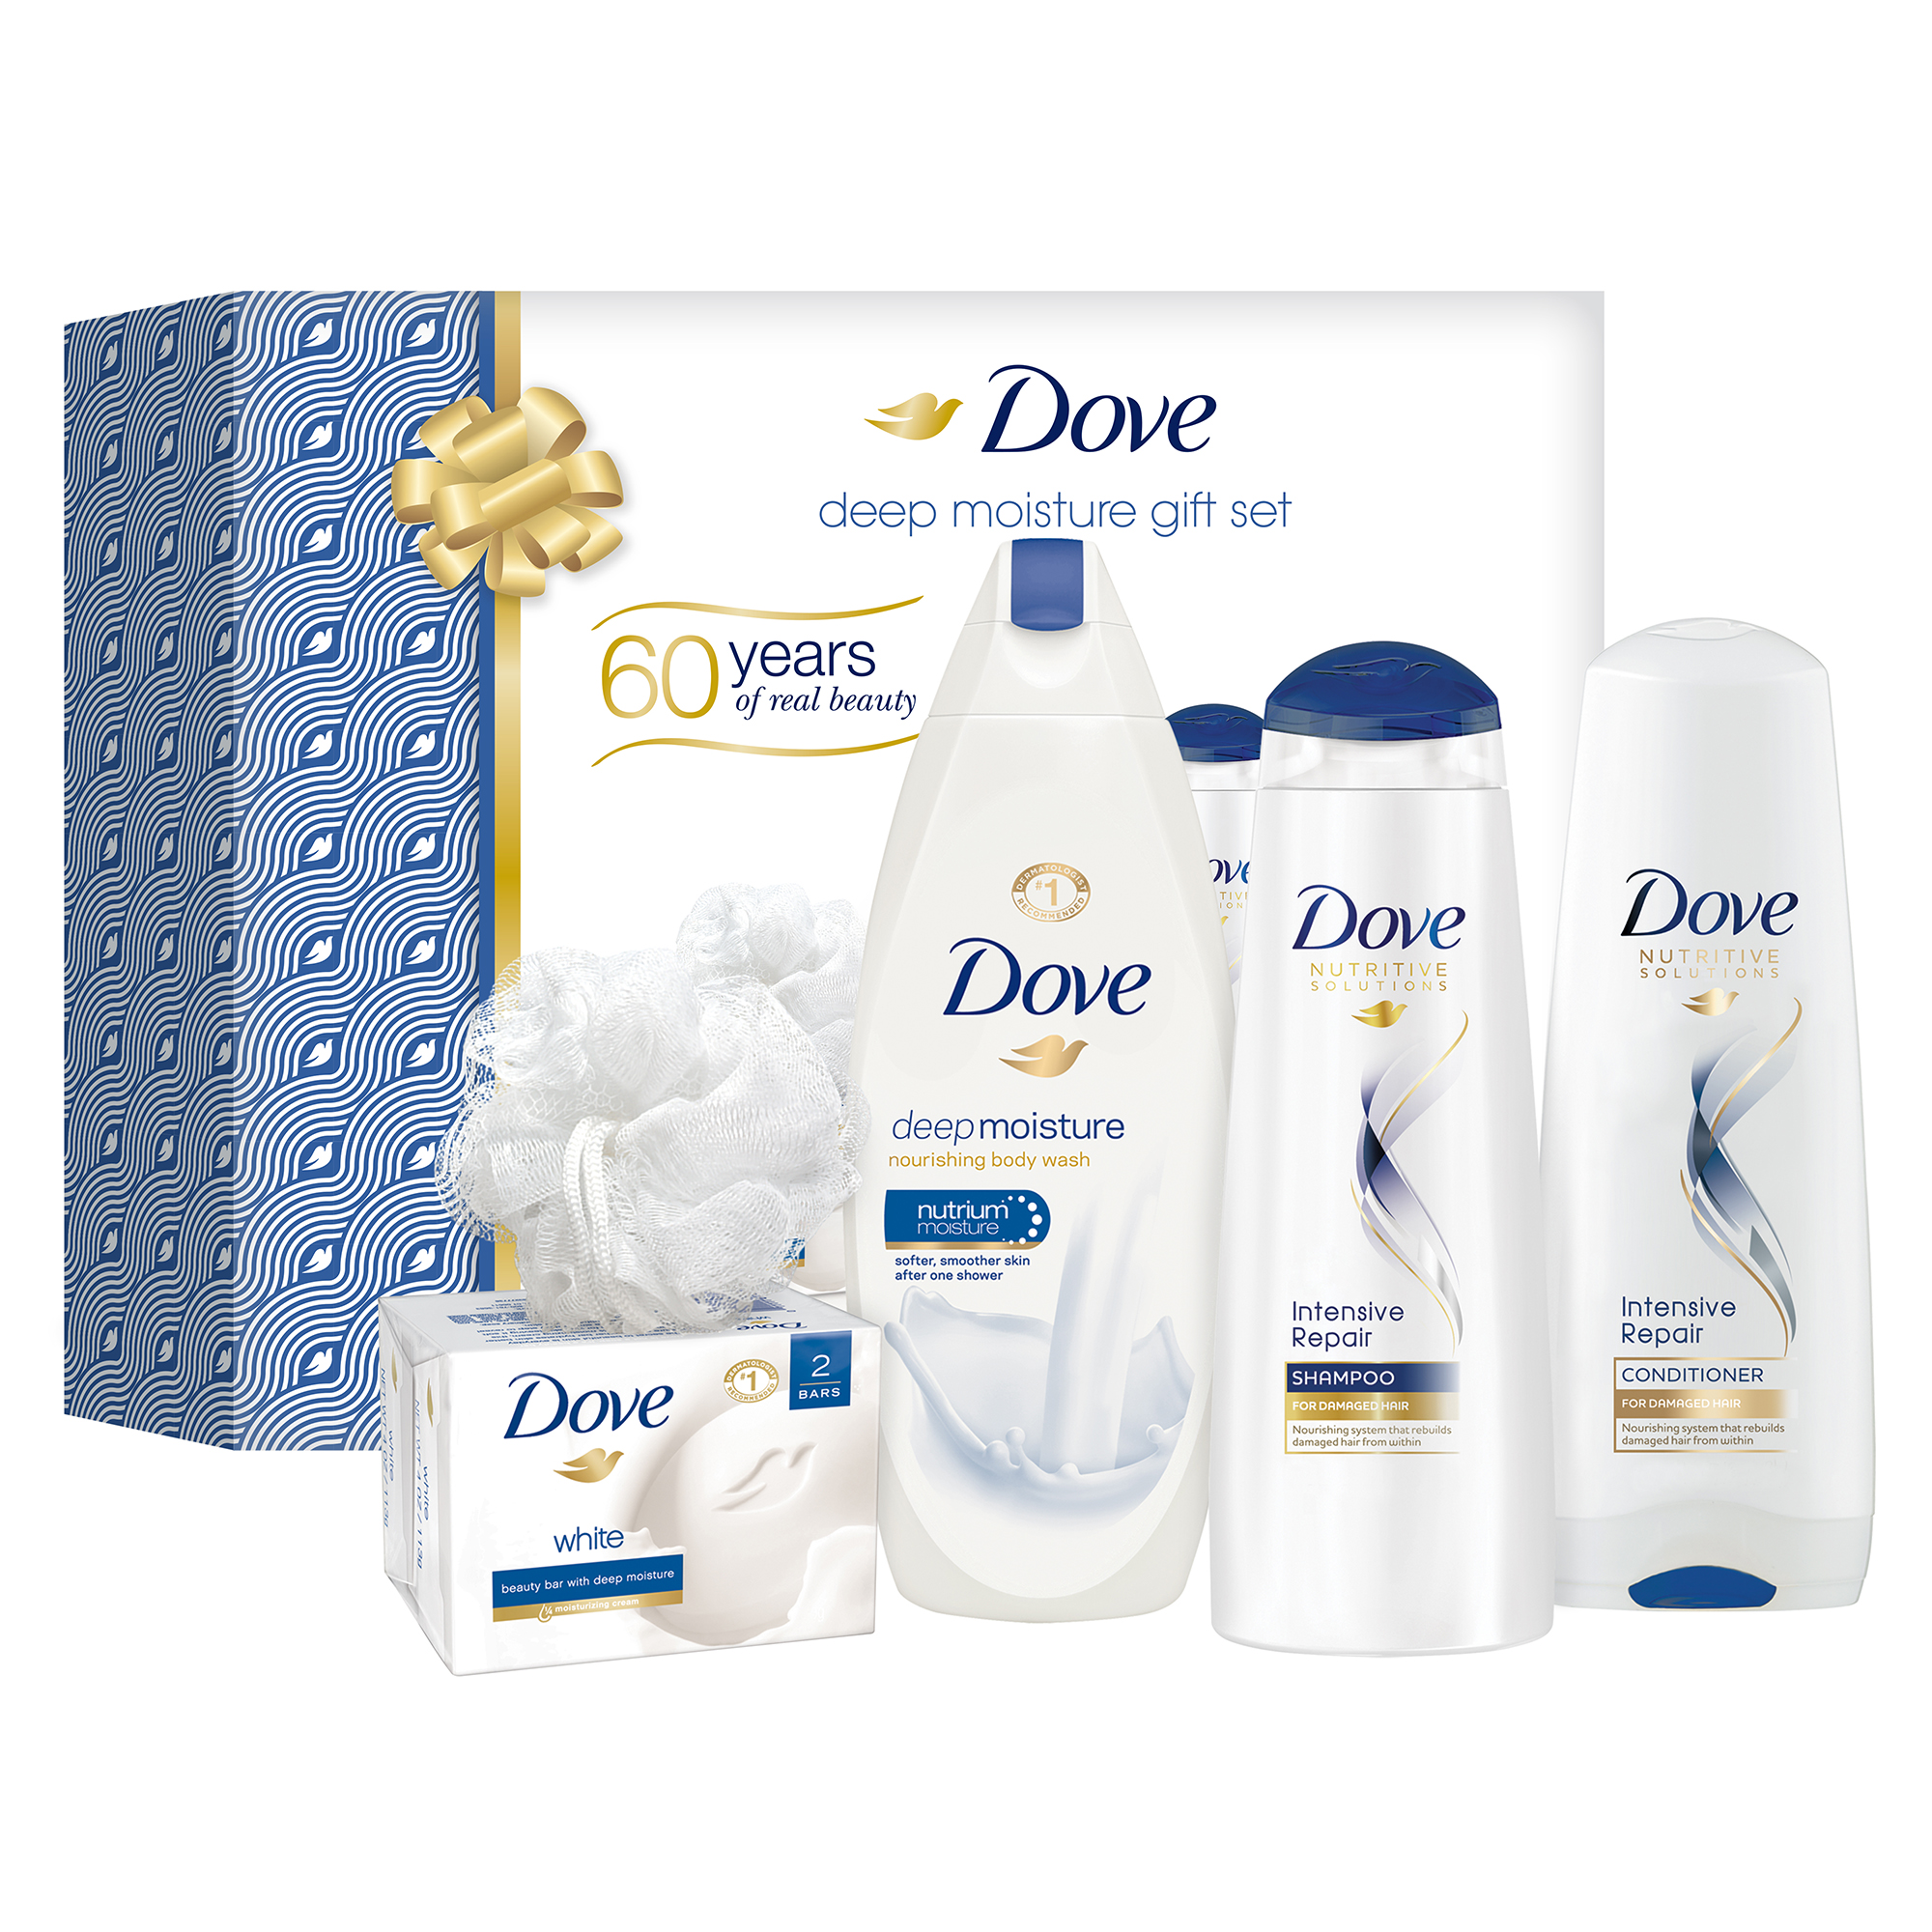 Dove Deep Moisture Holiday Gift Box ( Beauty Bar / Body Wash / Shampoo / Conditioner / Shower Puff), 5 Pieces